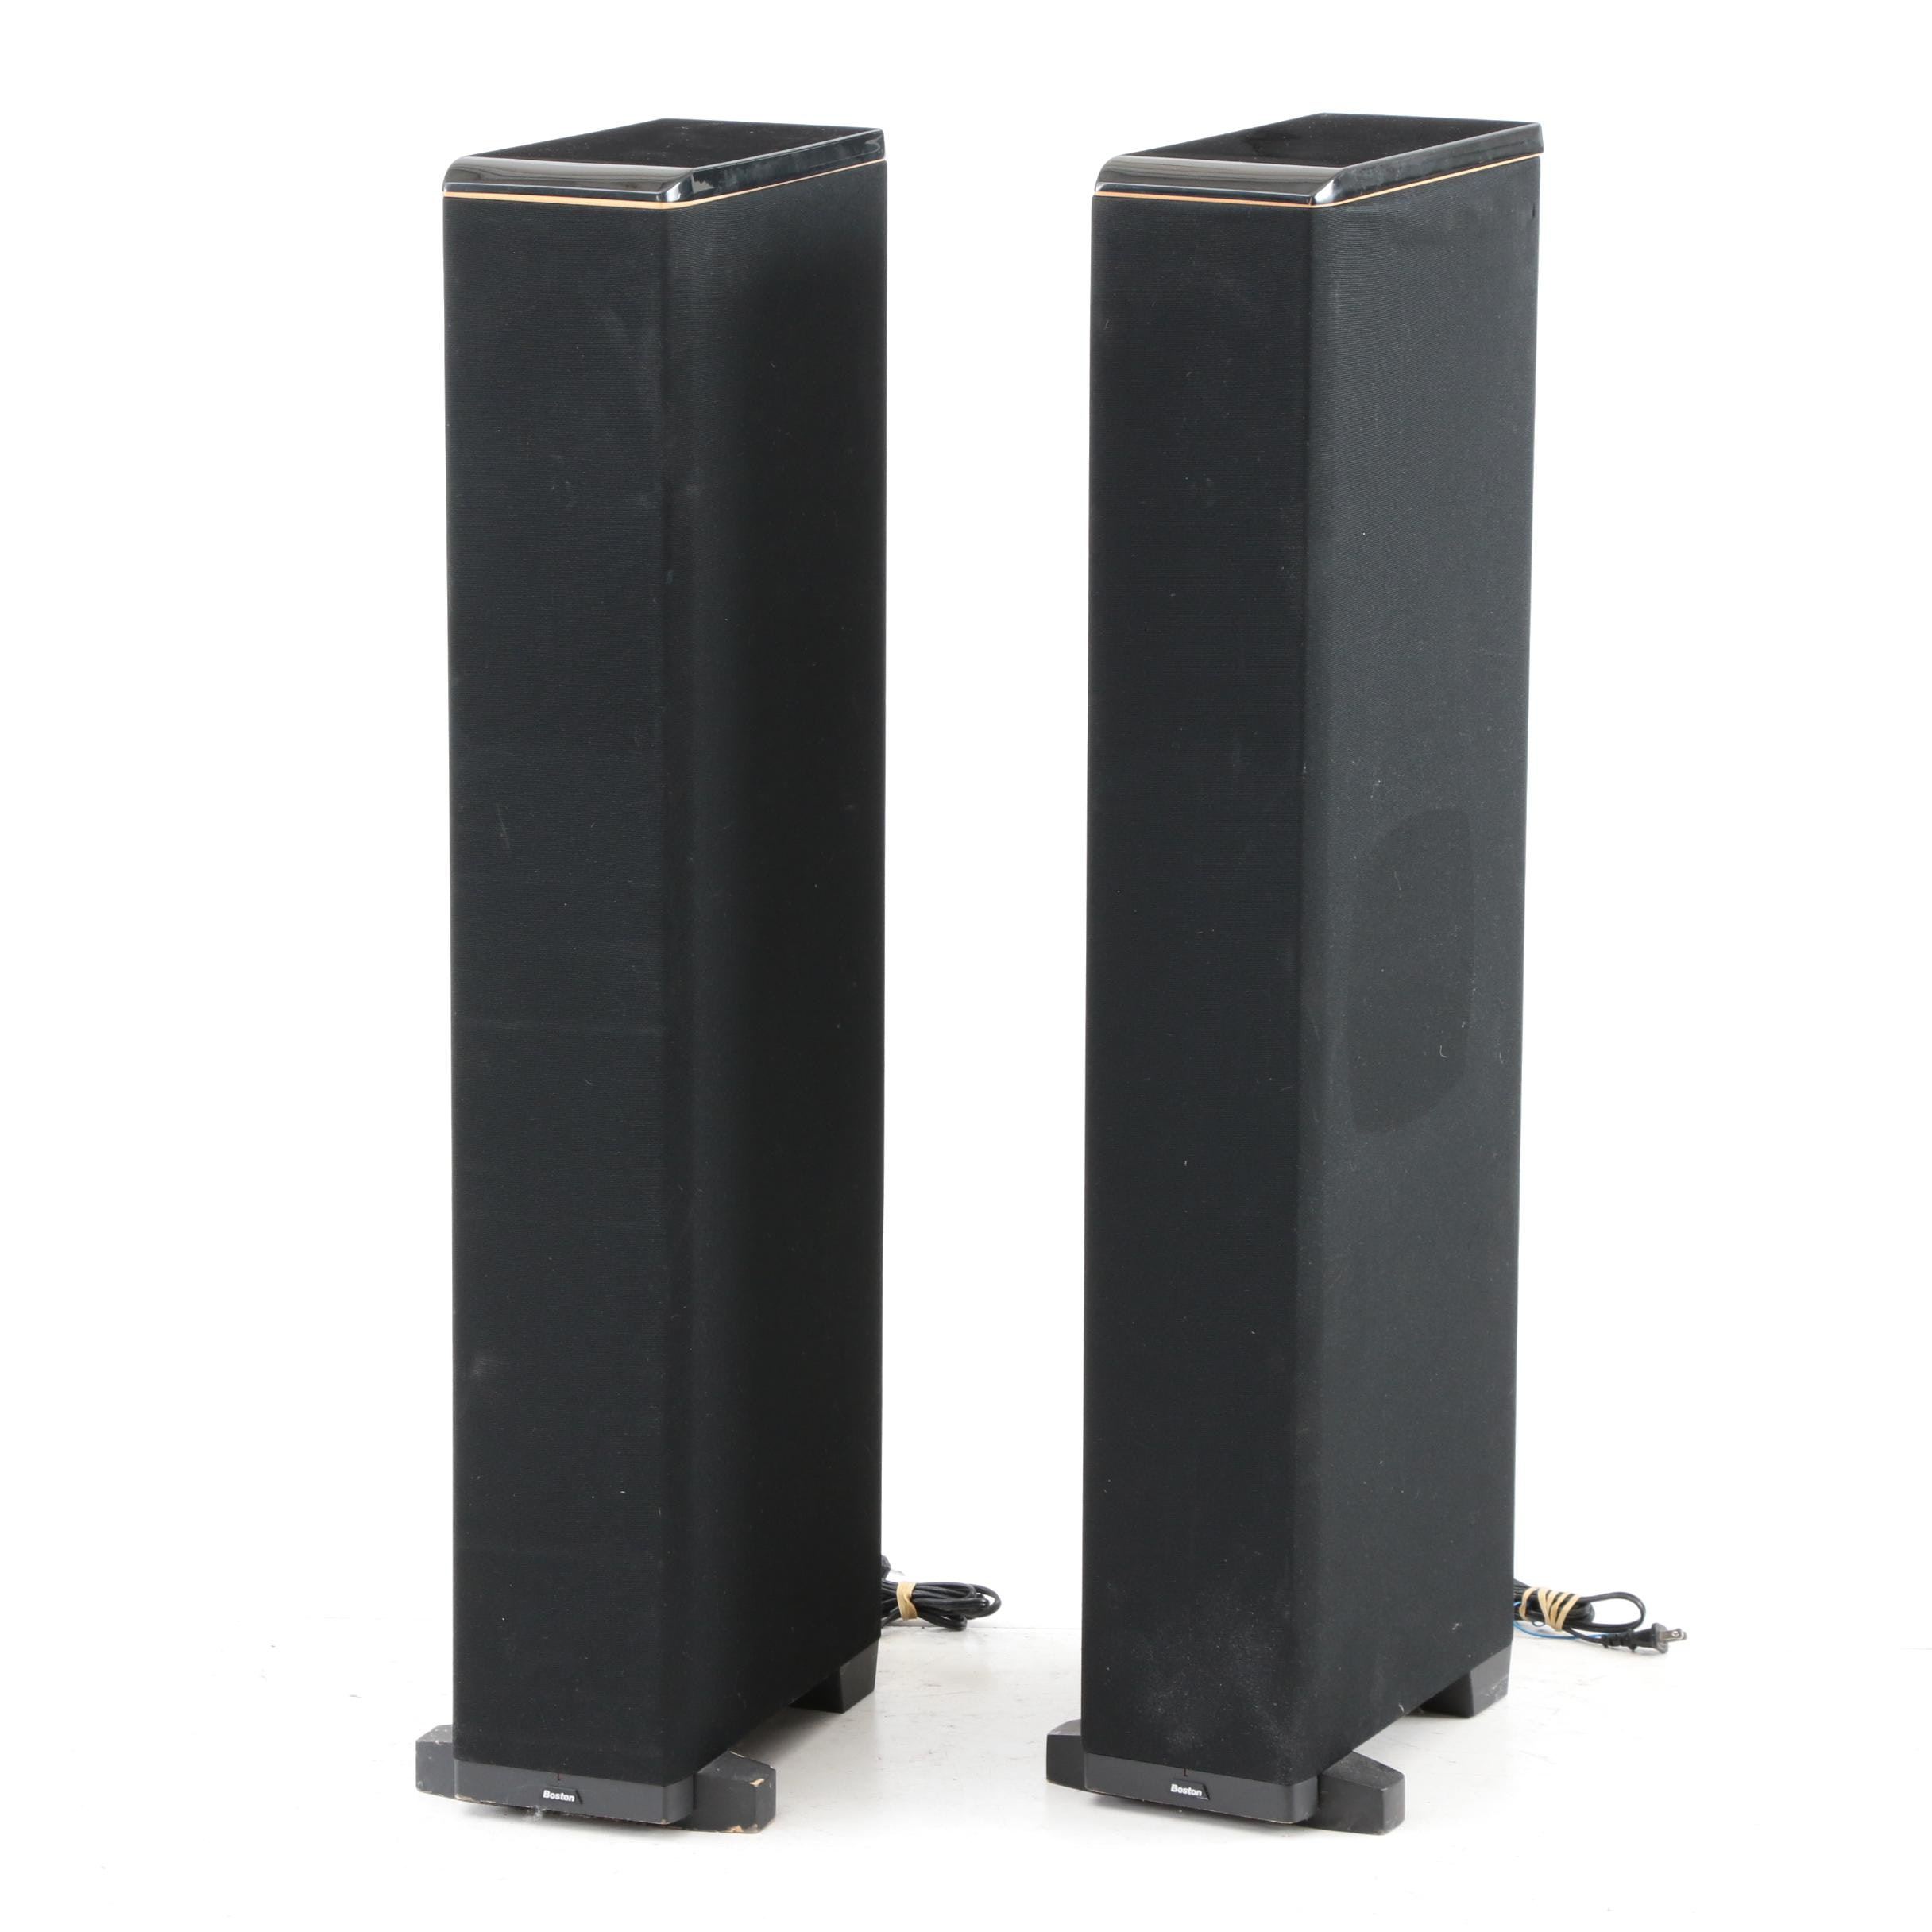 Pair of Boston Acoustics Floor Speakers